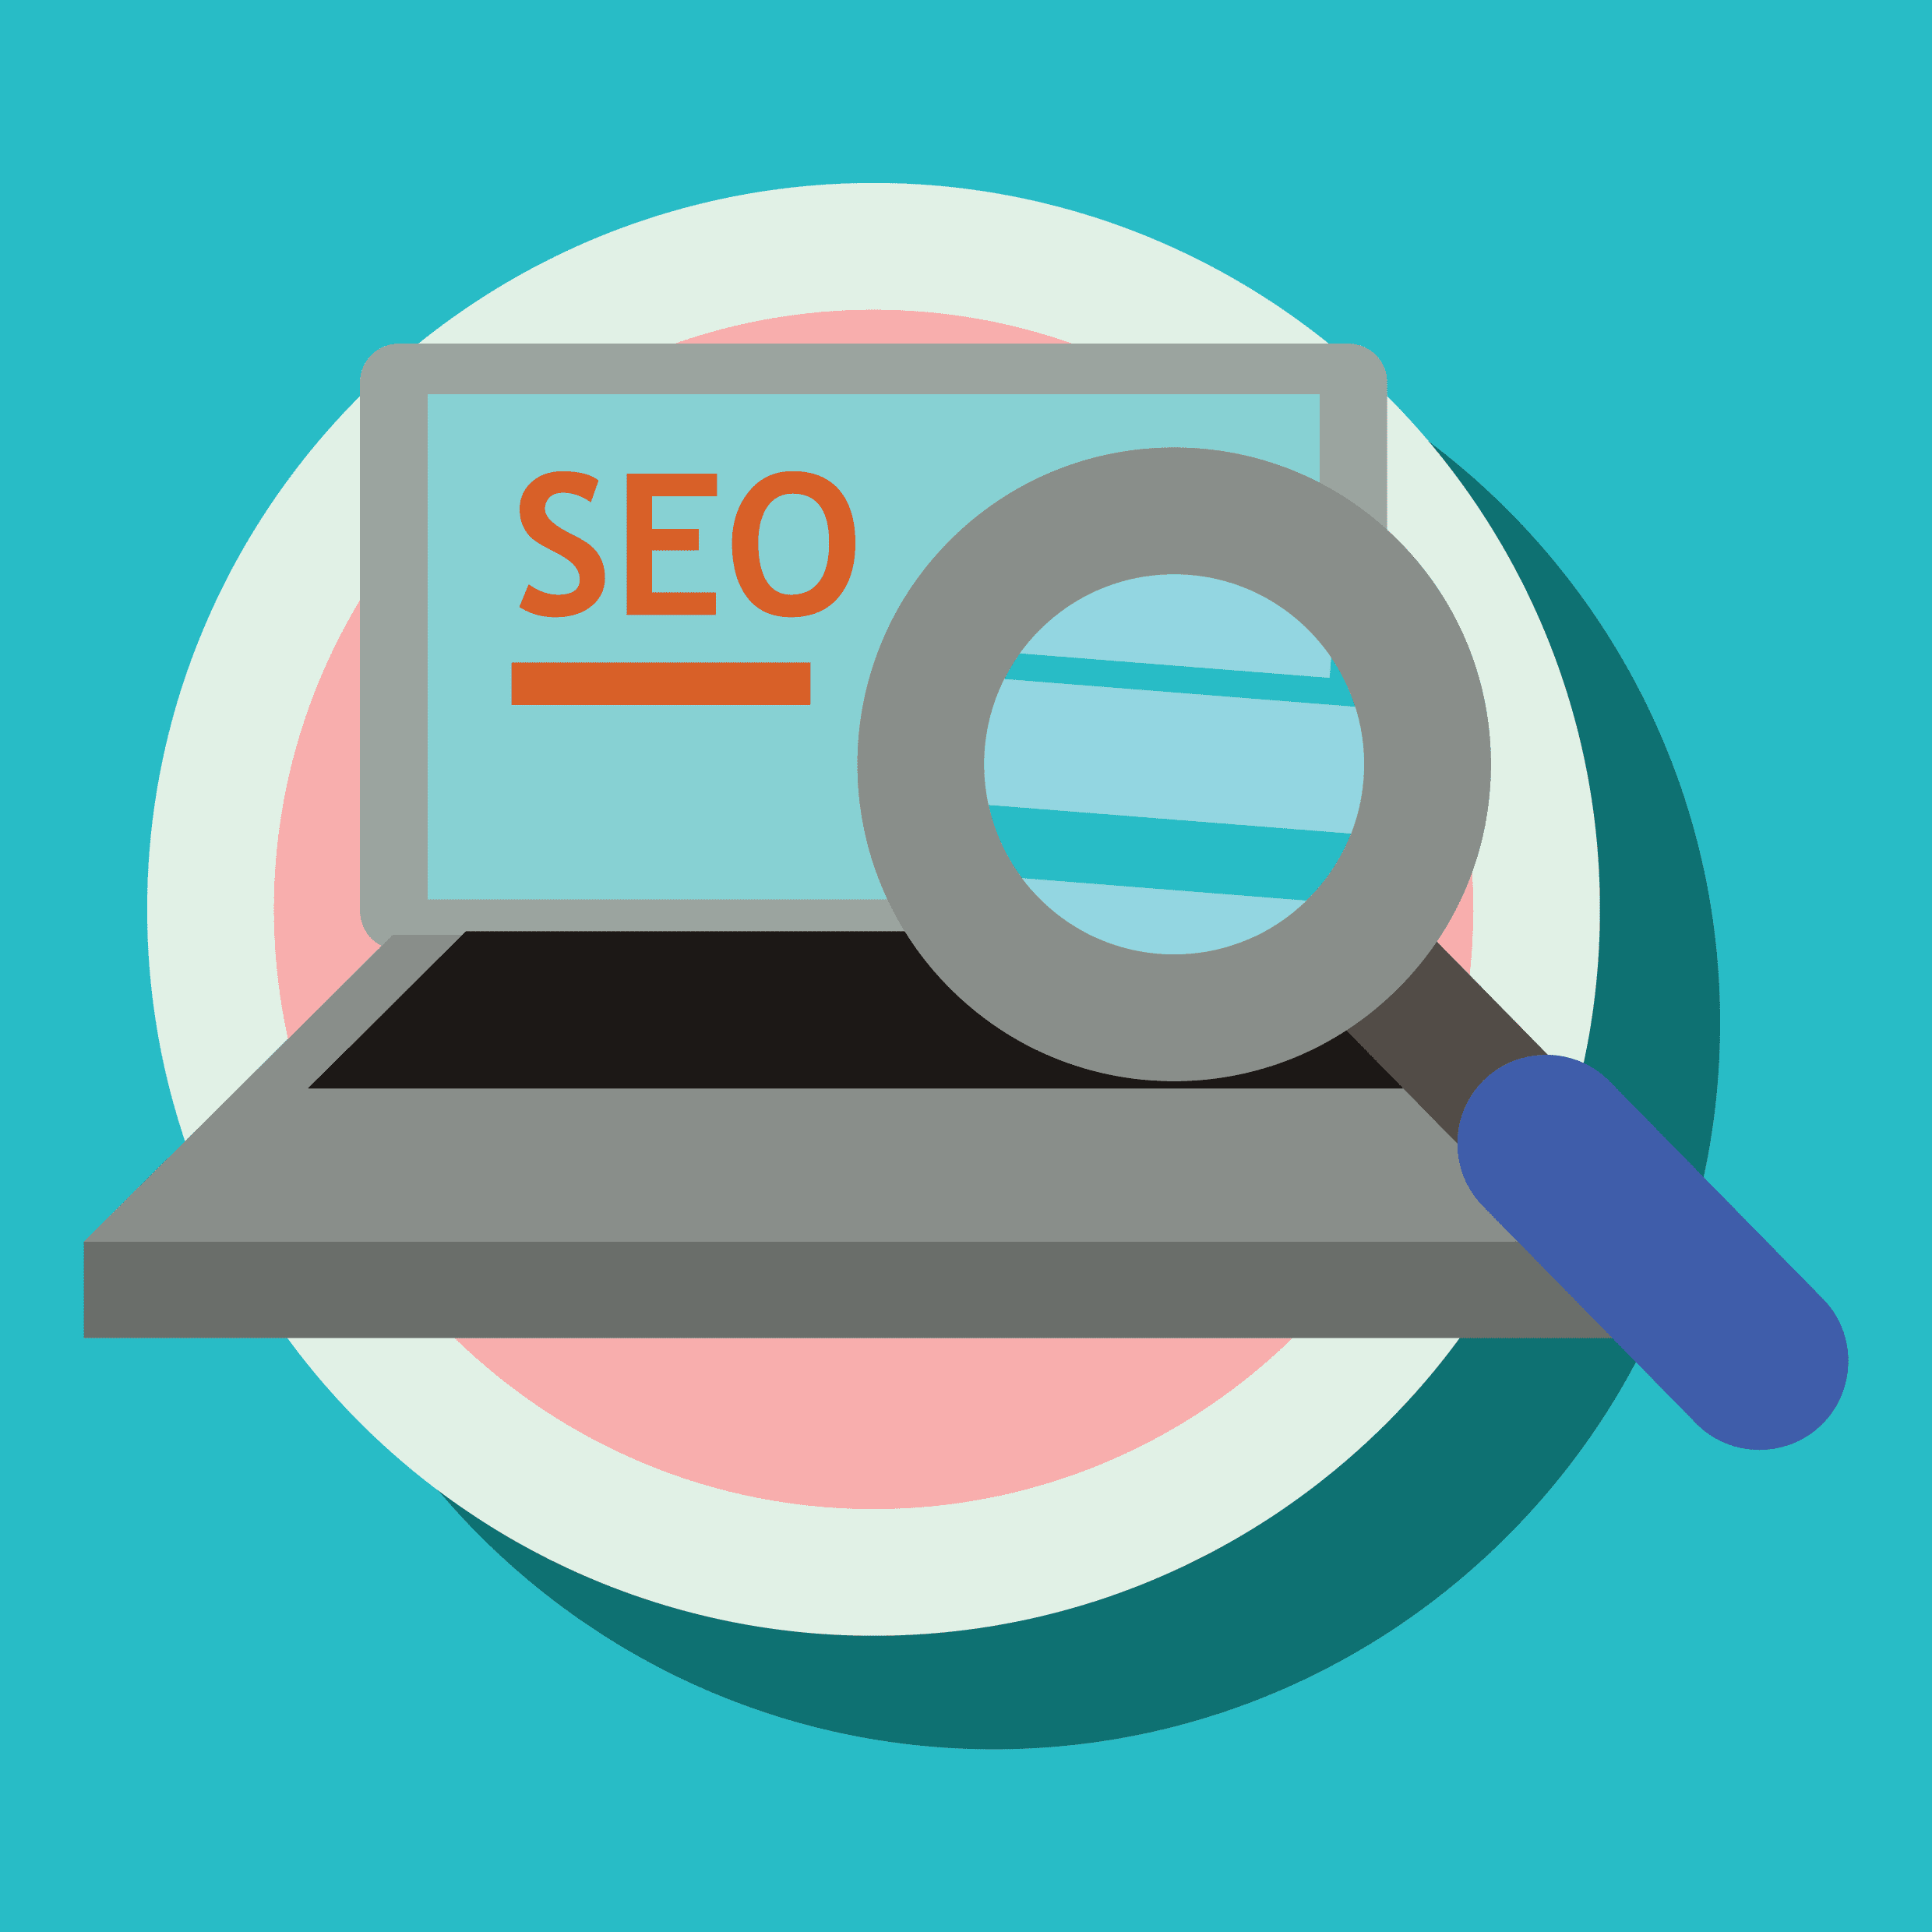 Which are the best SEO tools in 2017?